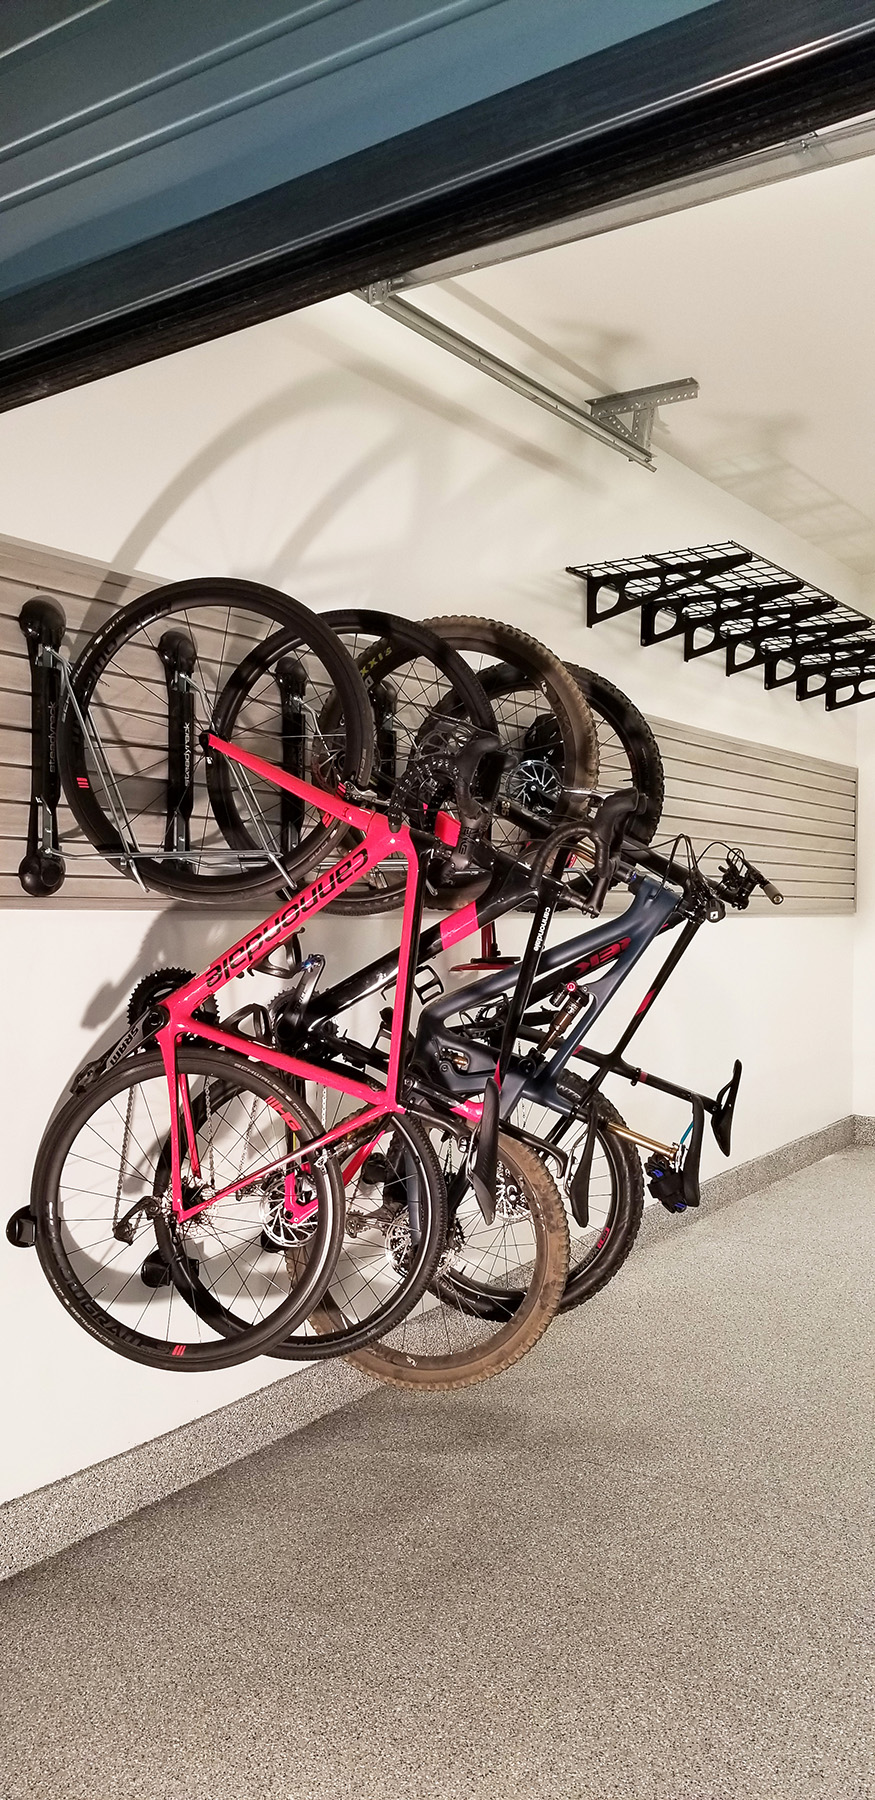 Garage_storewall_bike_red_Utah